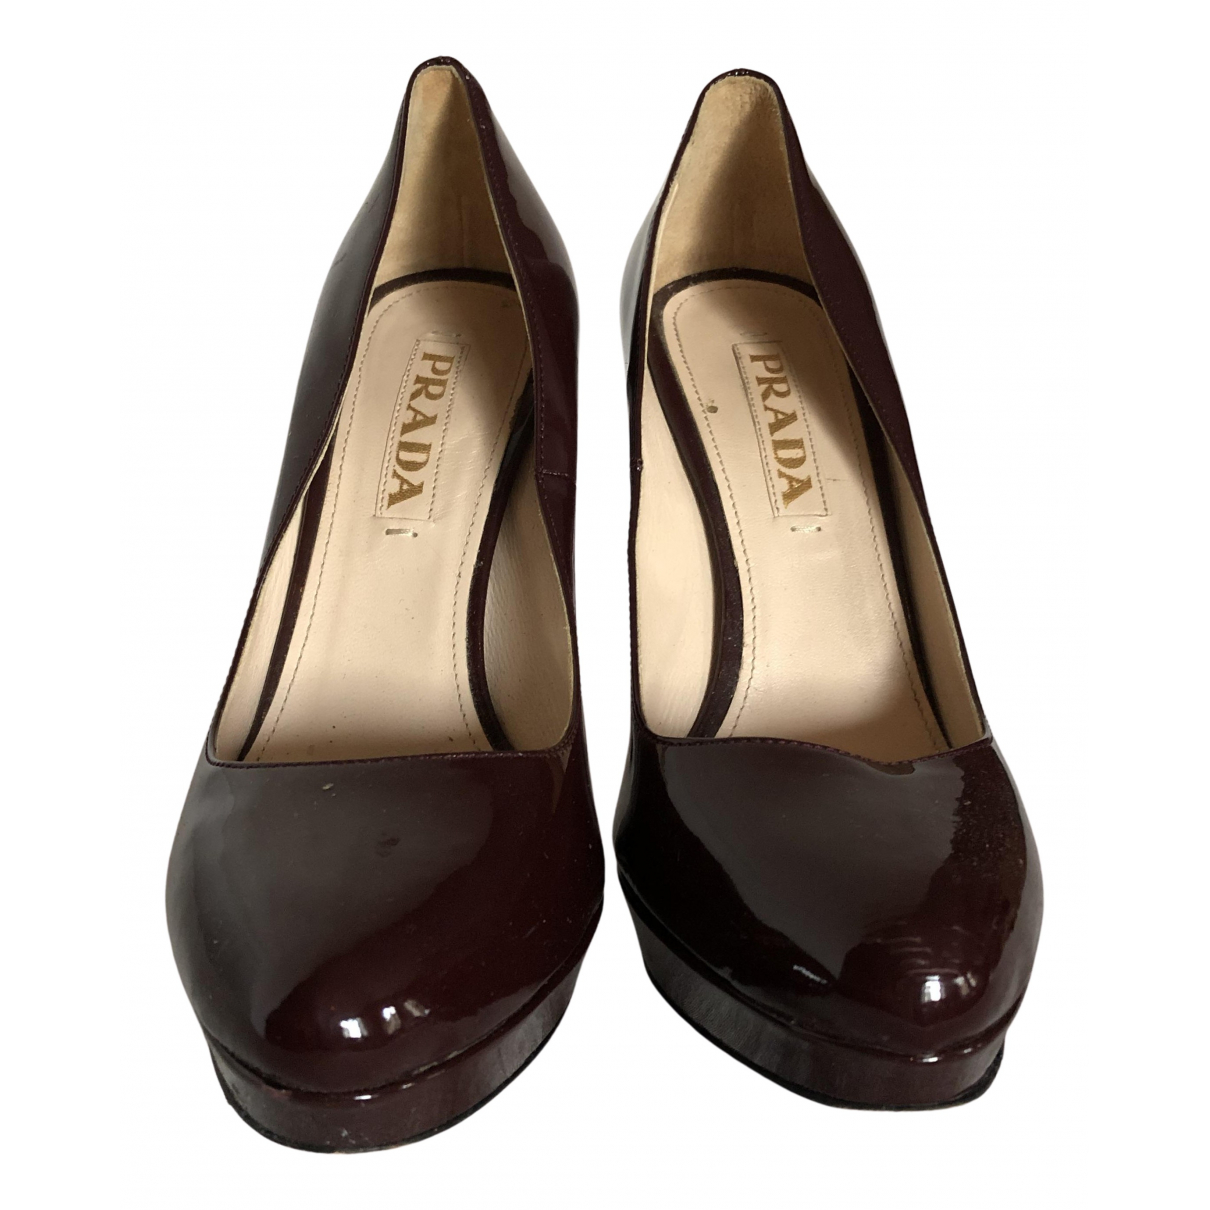 Prada N Burgundy Patent leather Heels for Women 36 IT